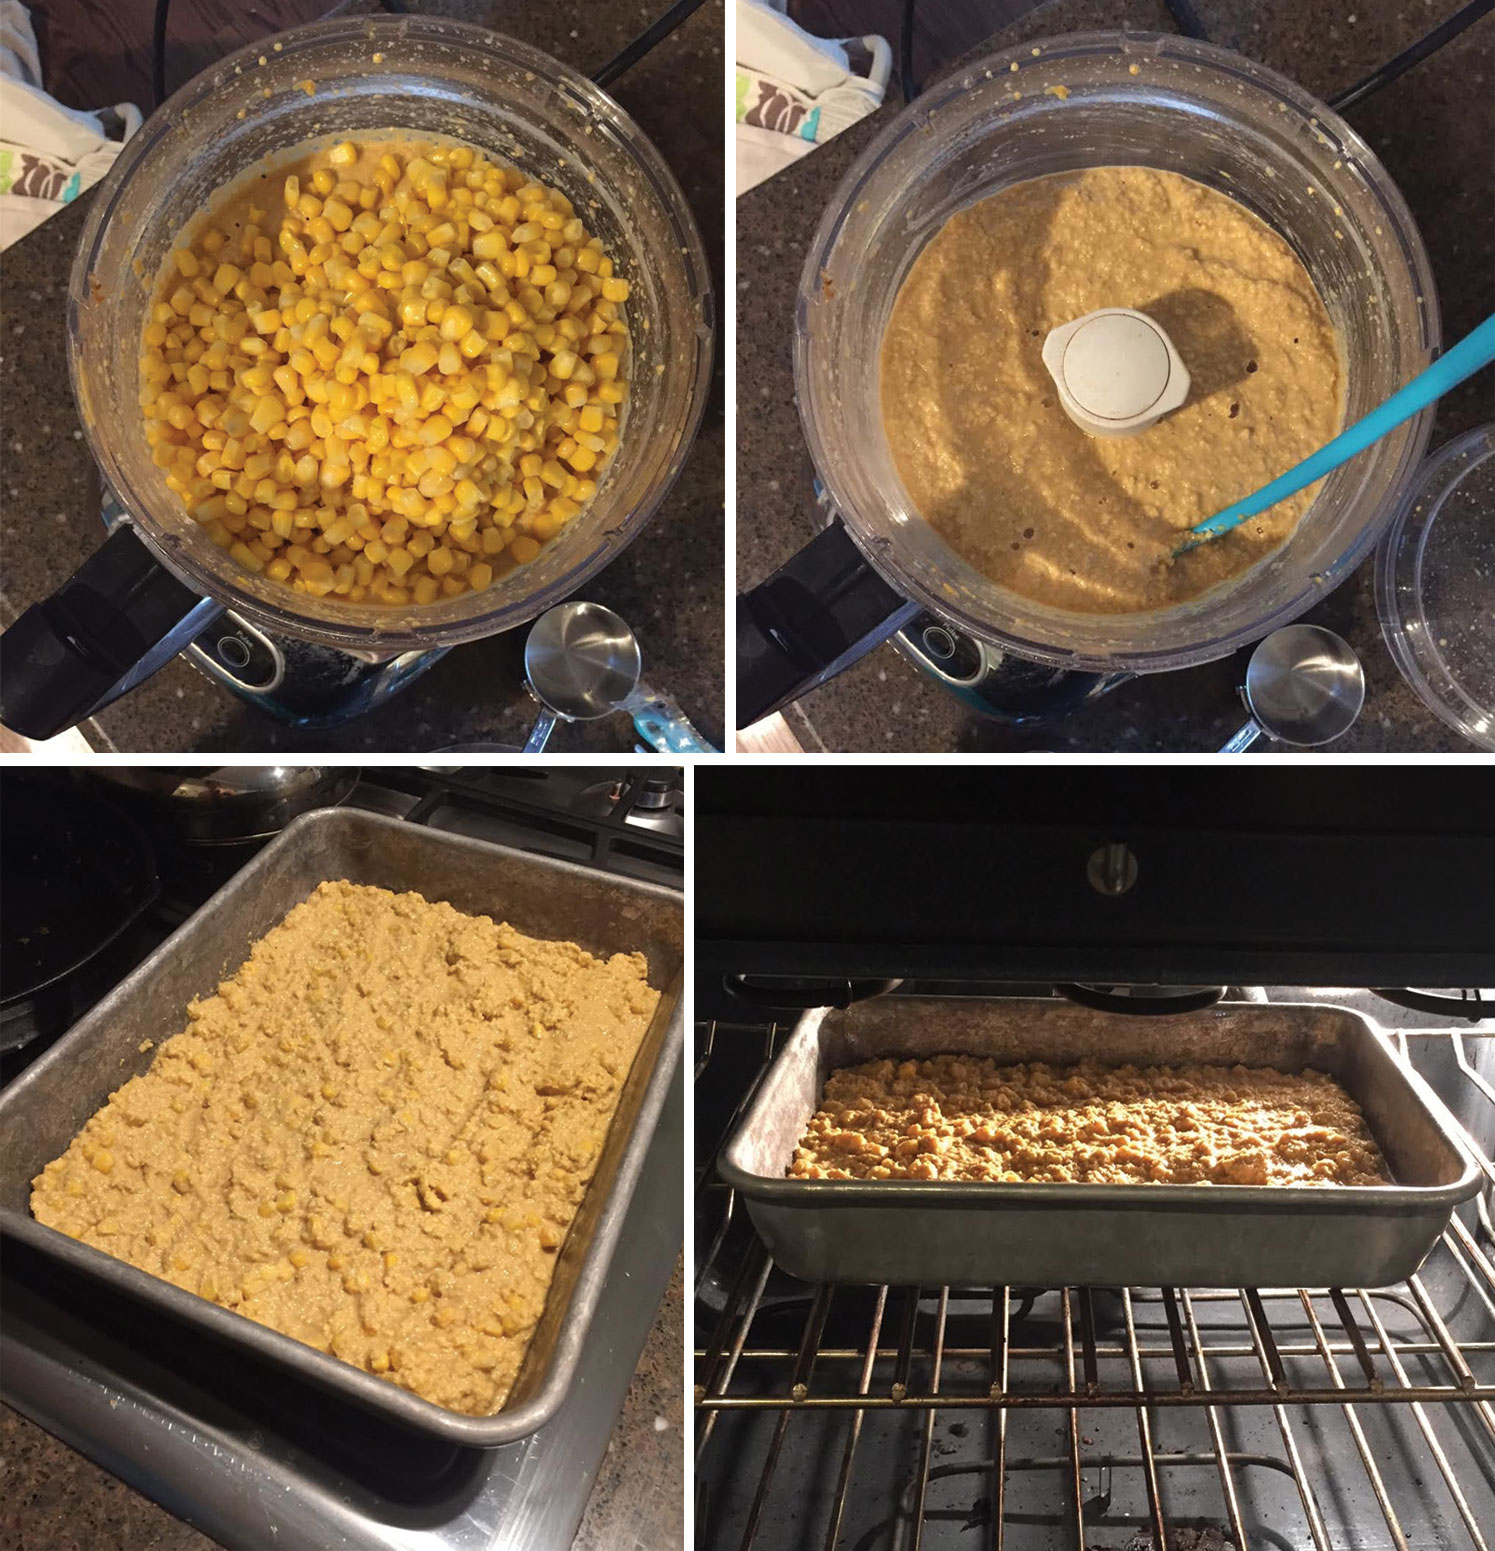 vegan corn casserole casserole being prepared and put into a baking pan